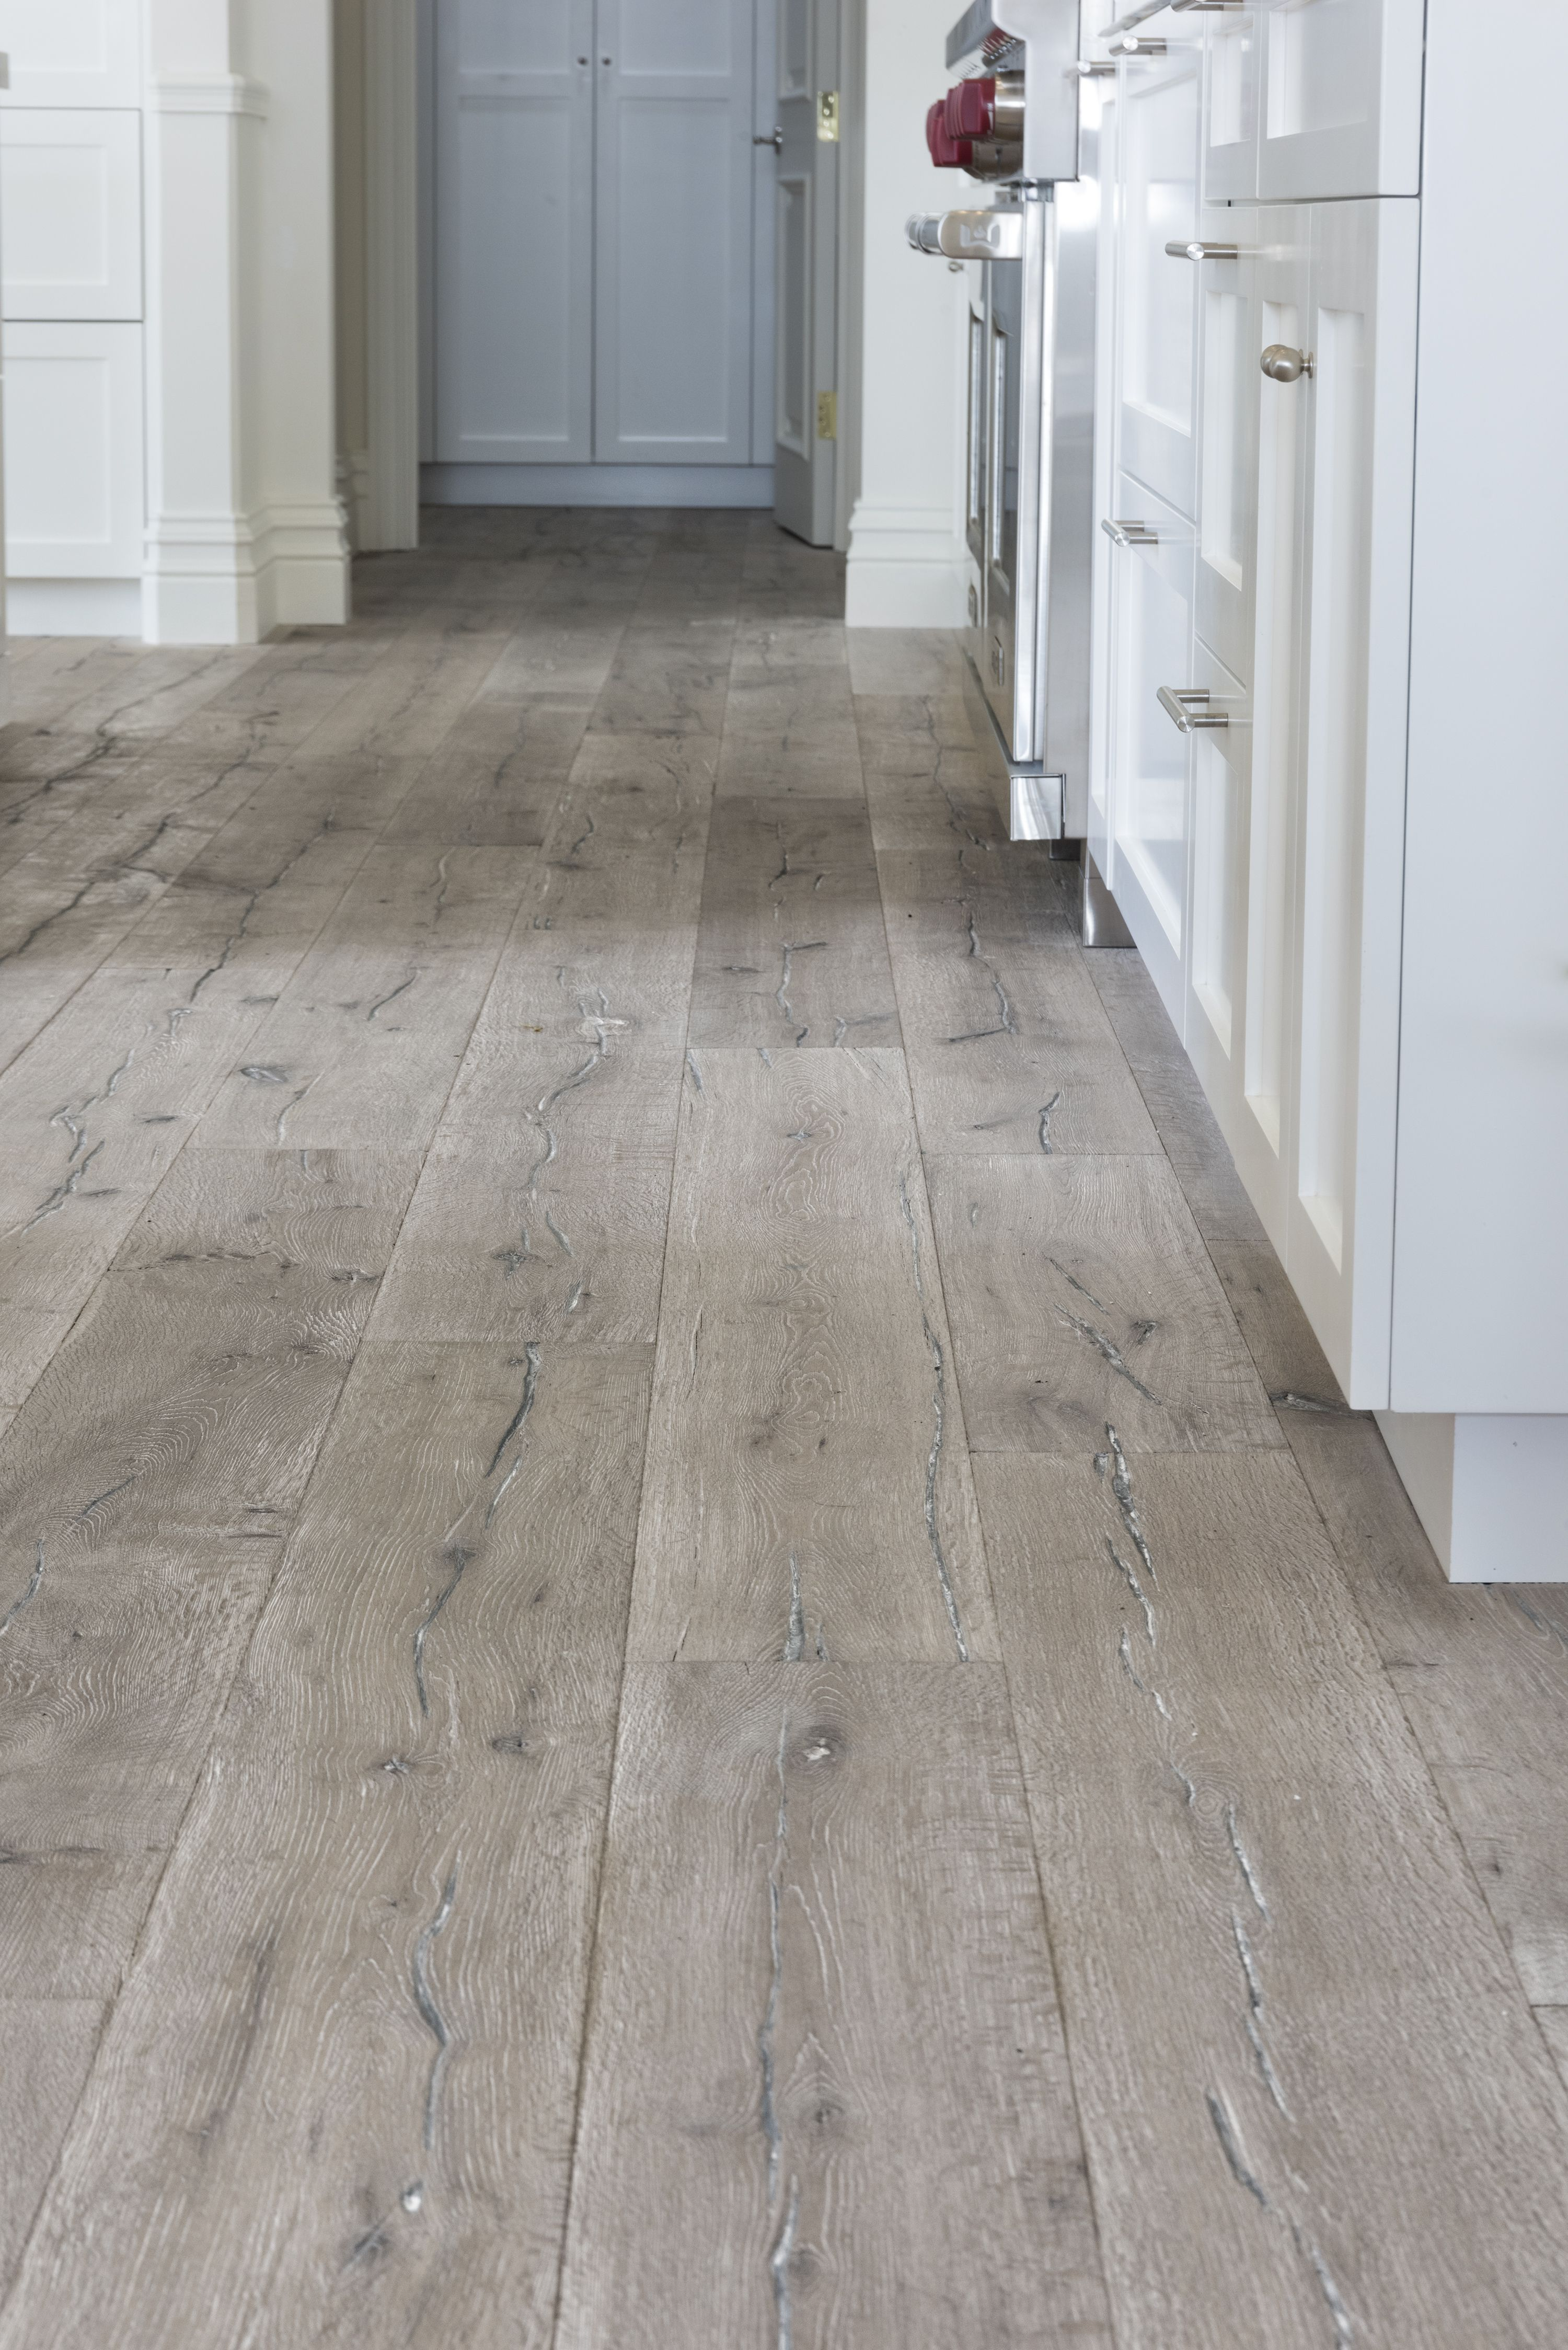 37 Wood Floor Texture Ideas Amp How To Flooring On A Budget